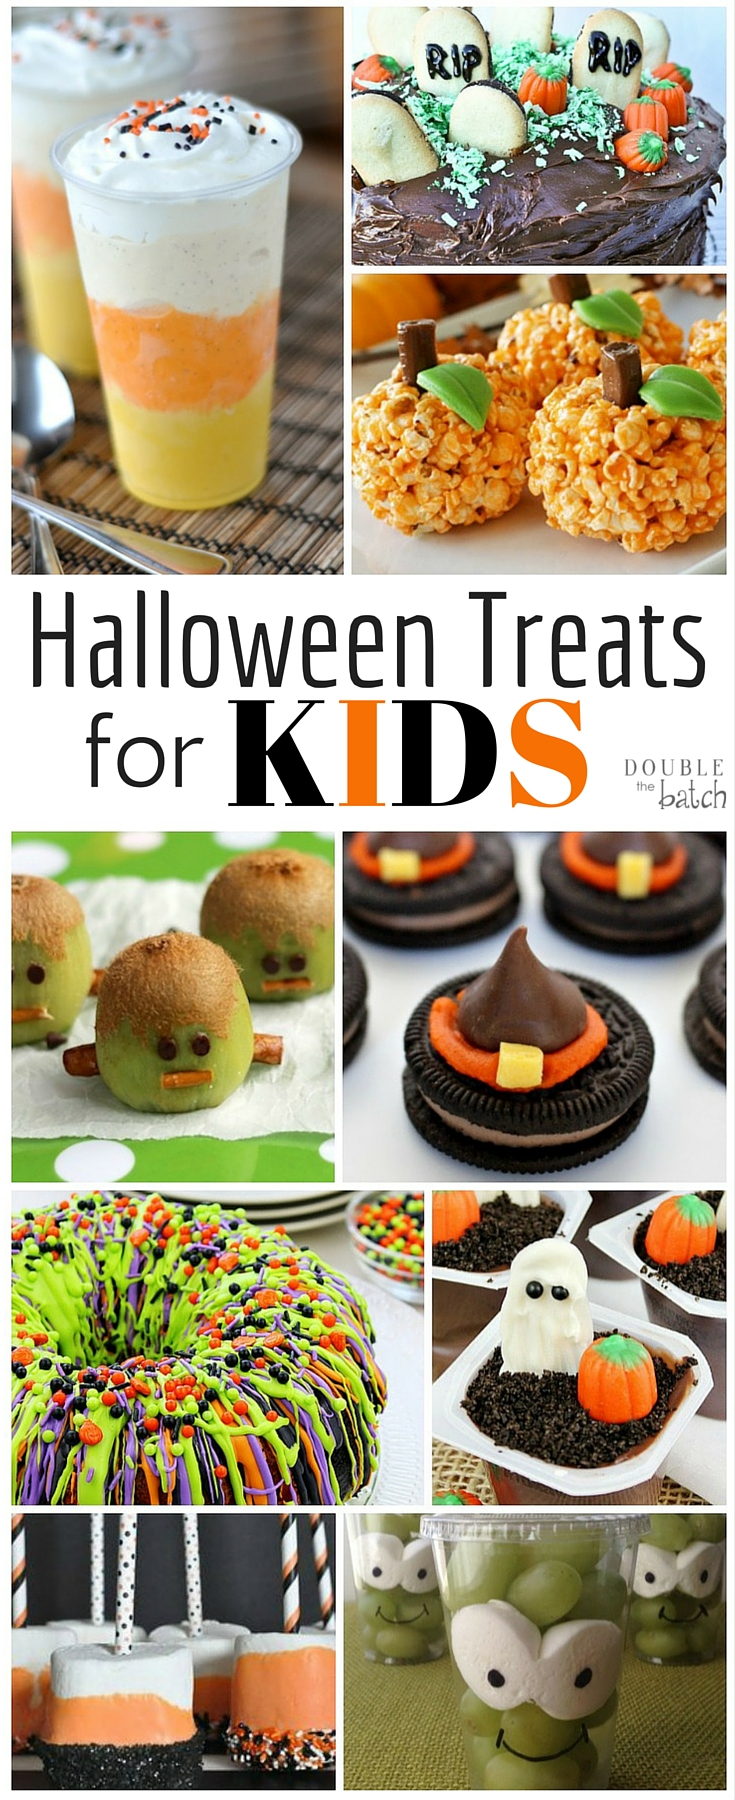 Aug 09,  · Easy Halloween treats, appetizers, and desserts are the best way to celebrate this spooky holiday. Create scary-good Halloween treats in minutes by using prepared products—we'll show you how! Start with store-bought cupcakes, bagged candy corn, and even canned pizza crust to create Halloween treats, Halloween cocktails, and Halloween appetizers that are ideal for your Halloween party.